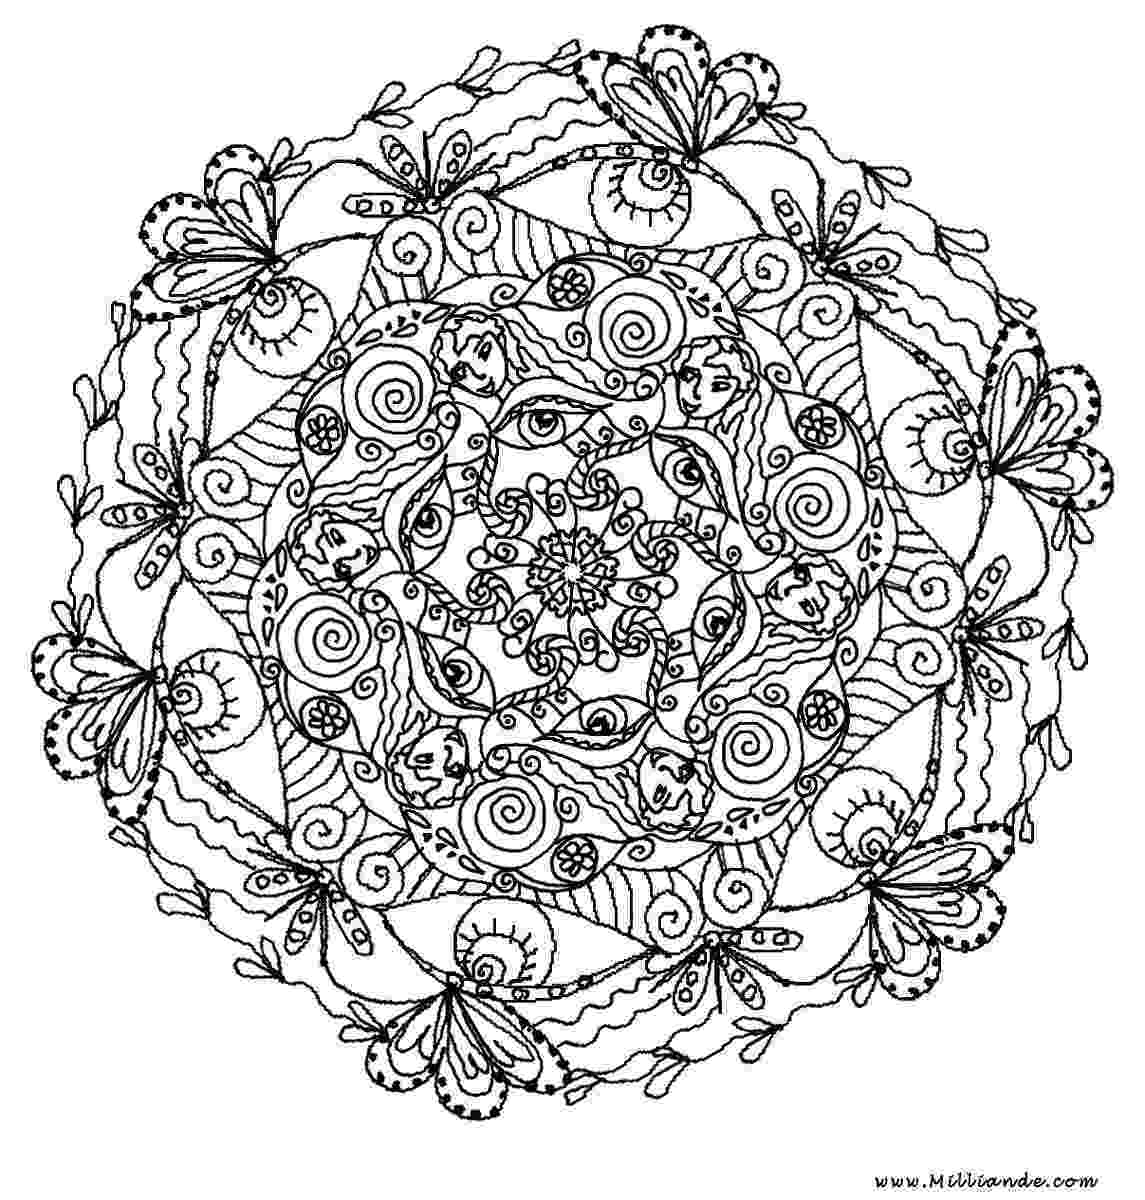 mandala coloring pages for adults free printable mandalas for adults for adults free coloring mandala pages